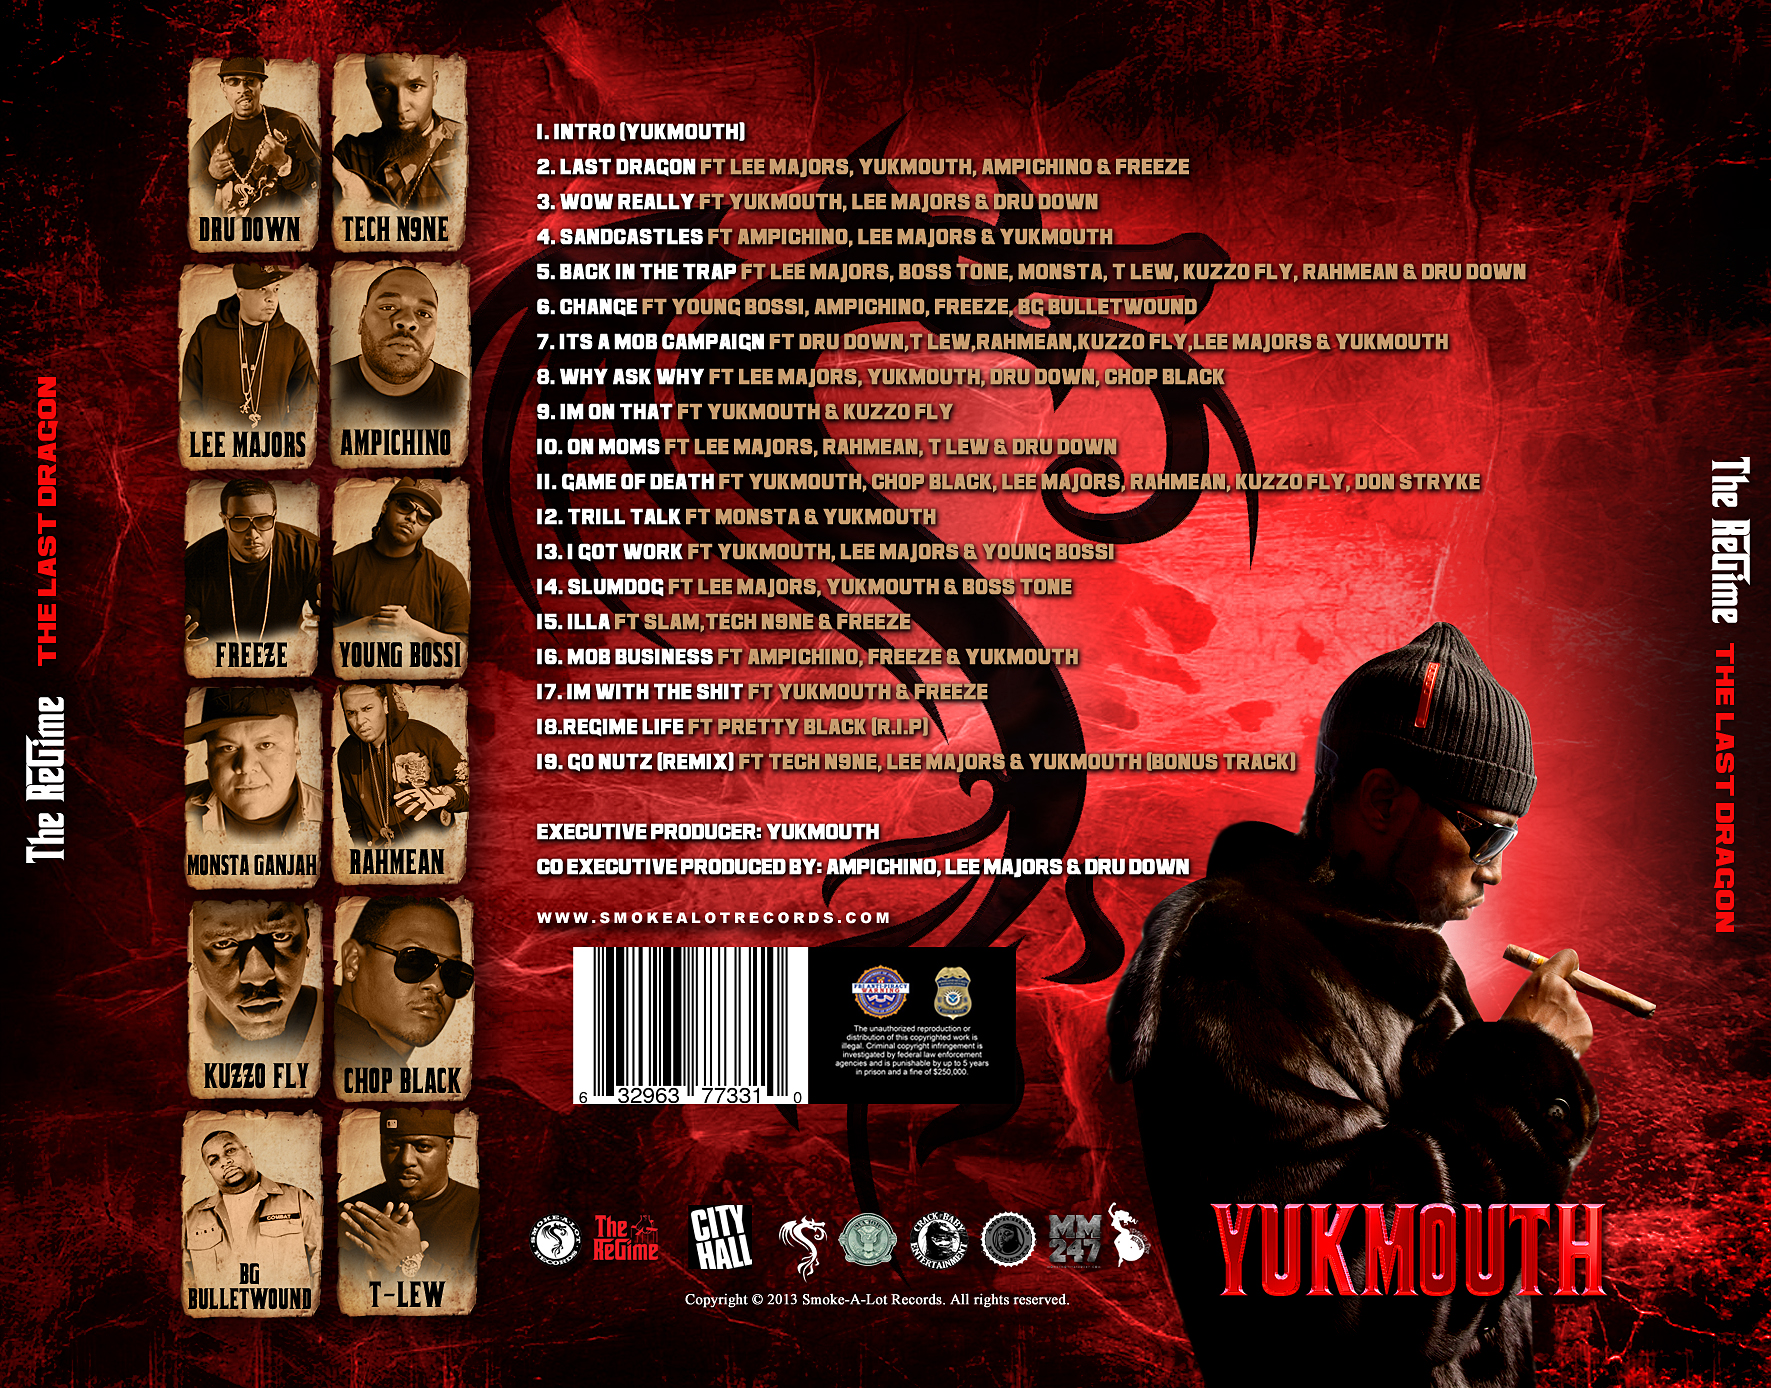 yukmouth-regime-last-dragon-back